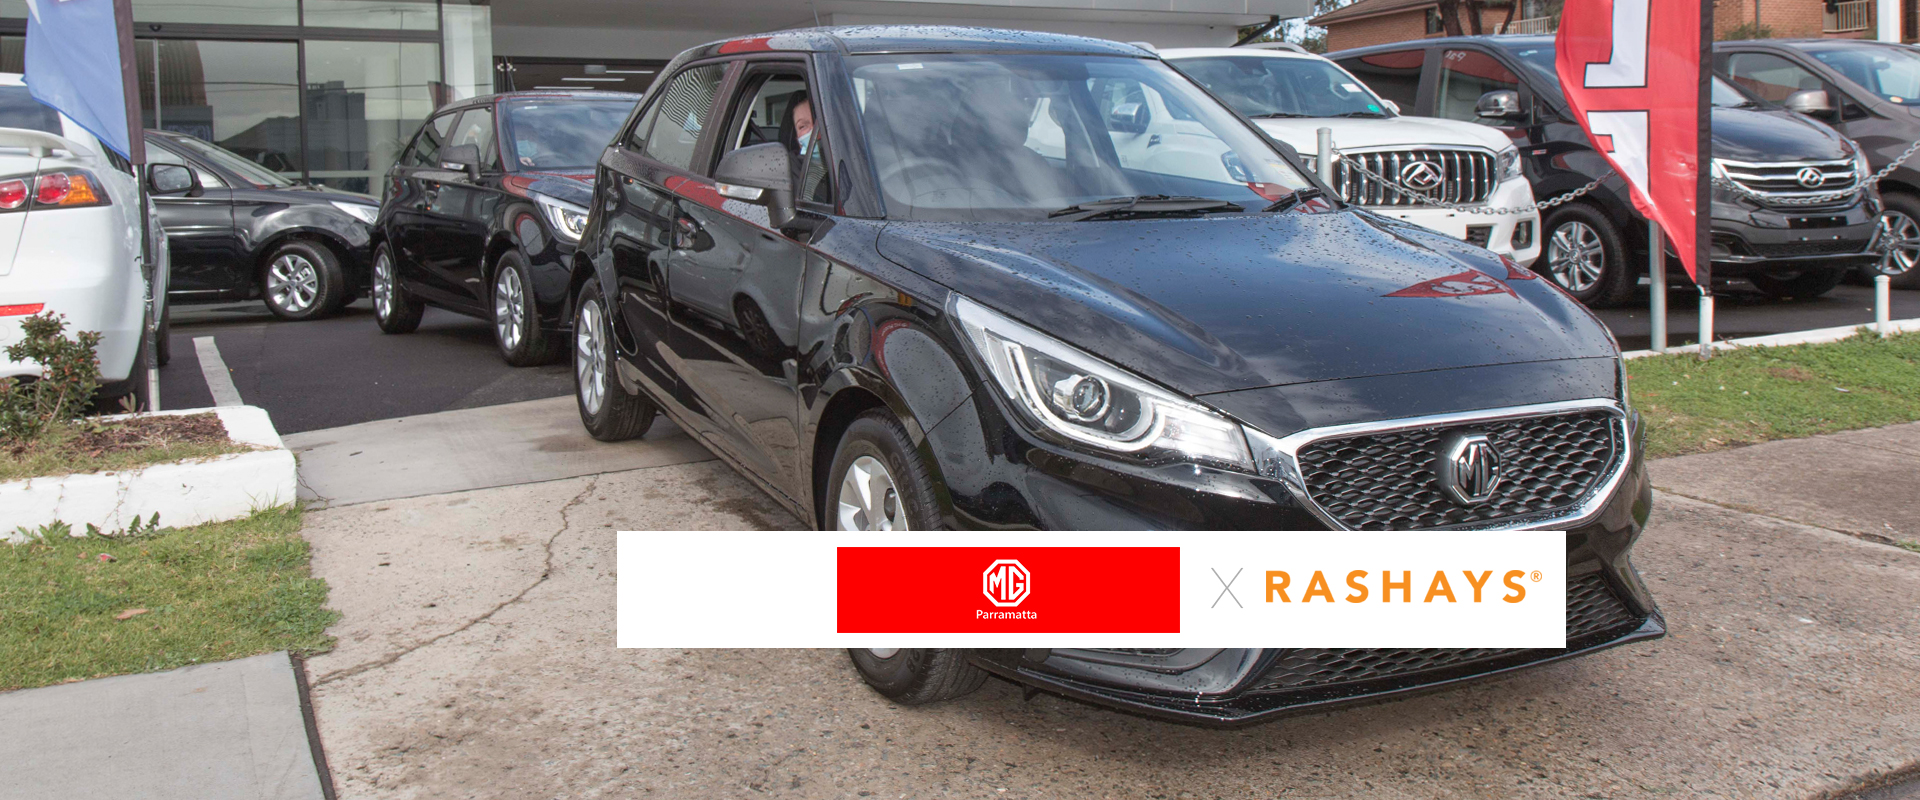 MG Parramatta Delivered 19 MG 3 Auto Fleet Cars To Rashays Australia